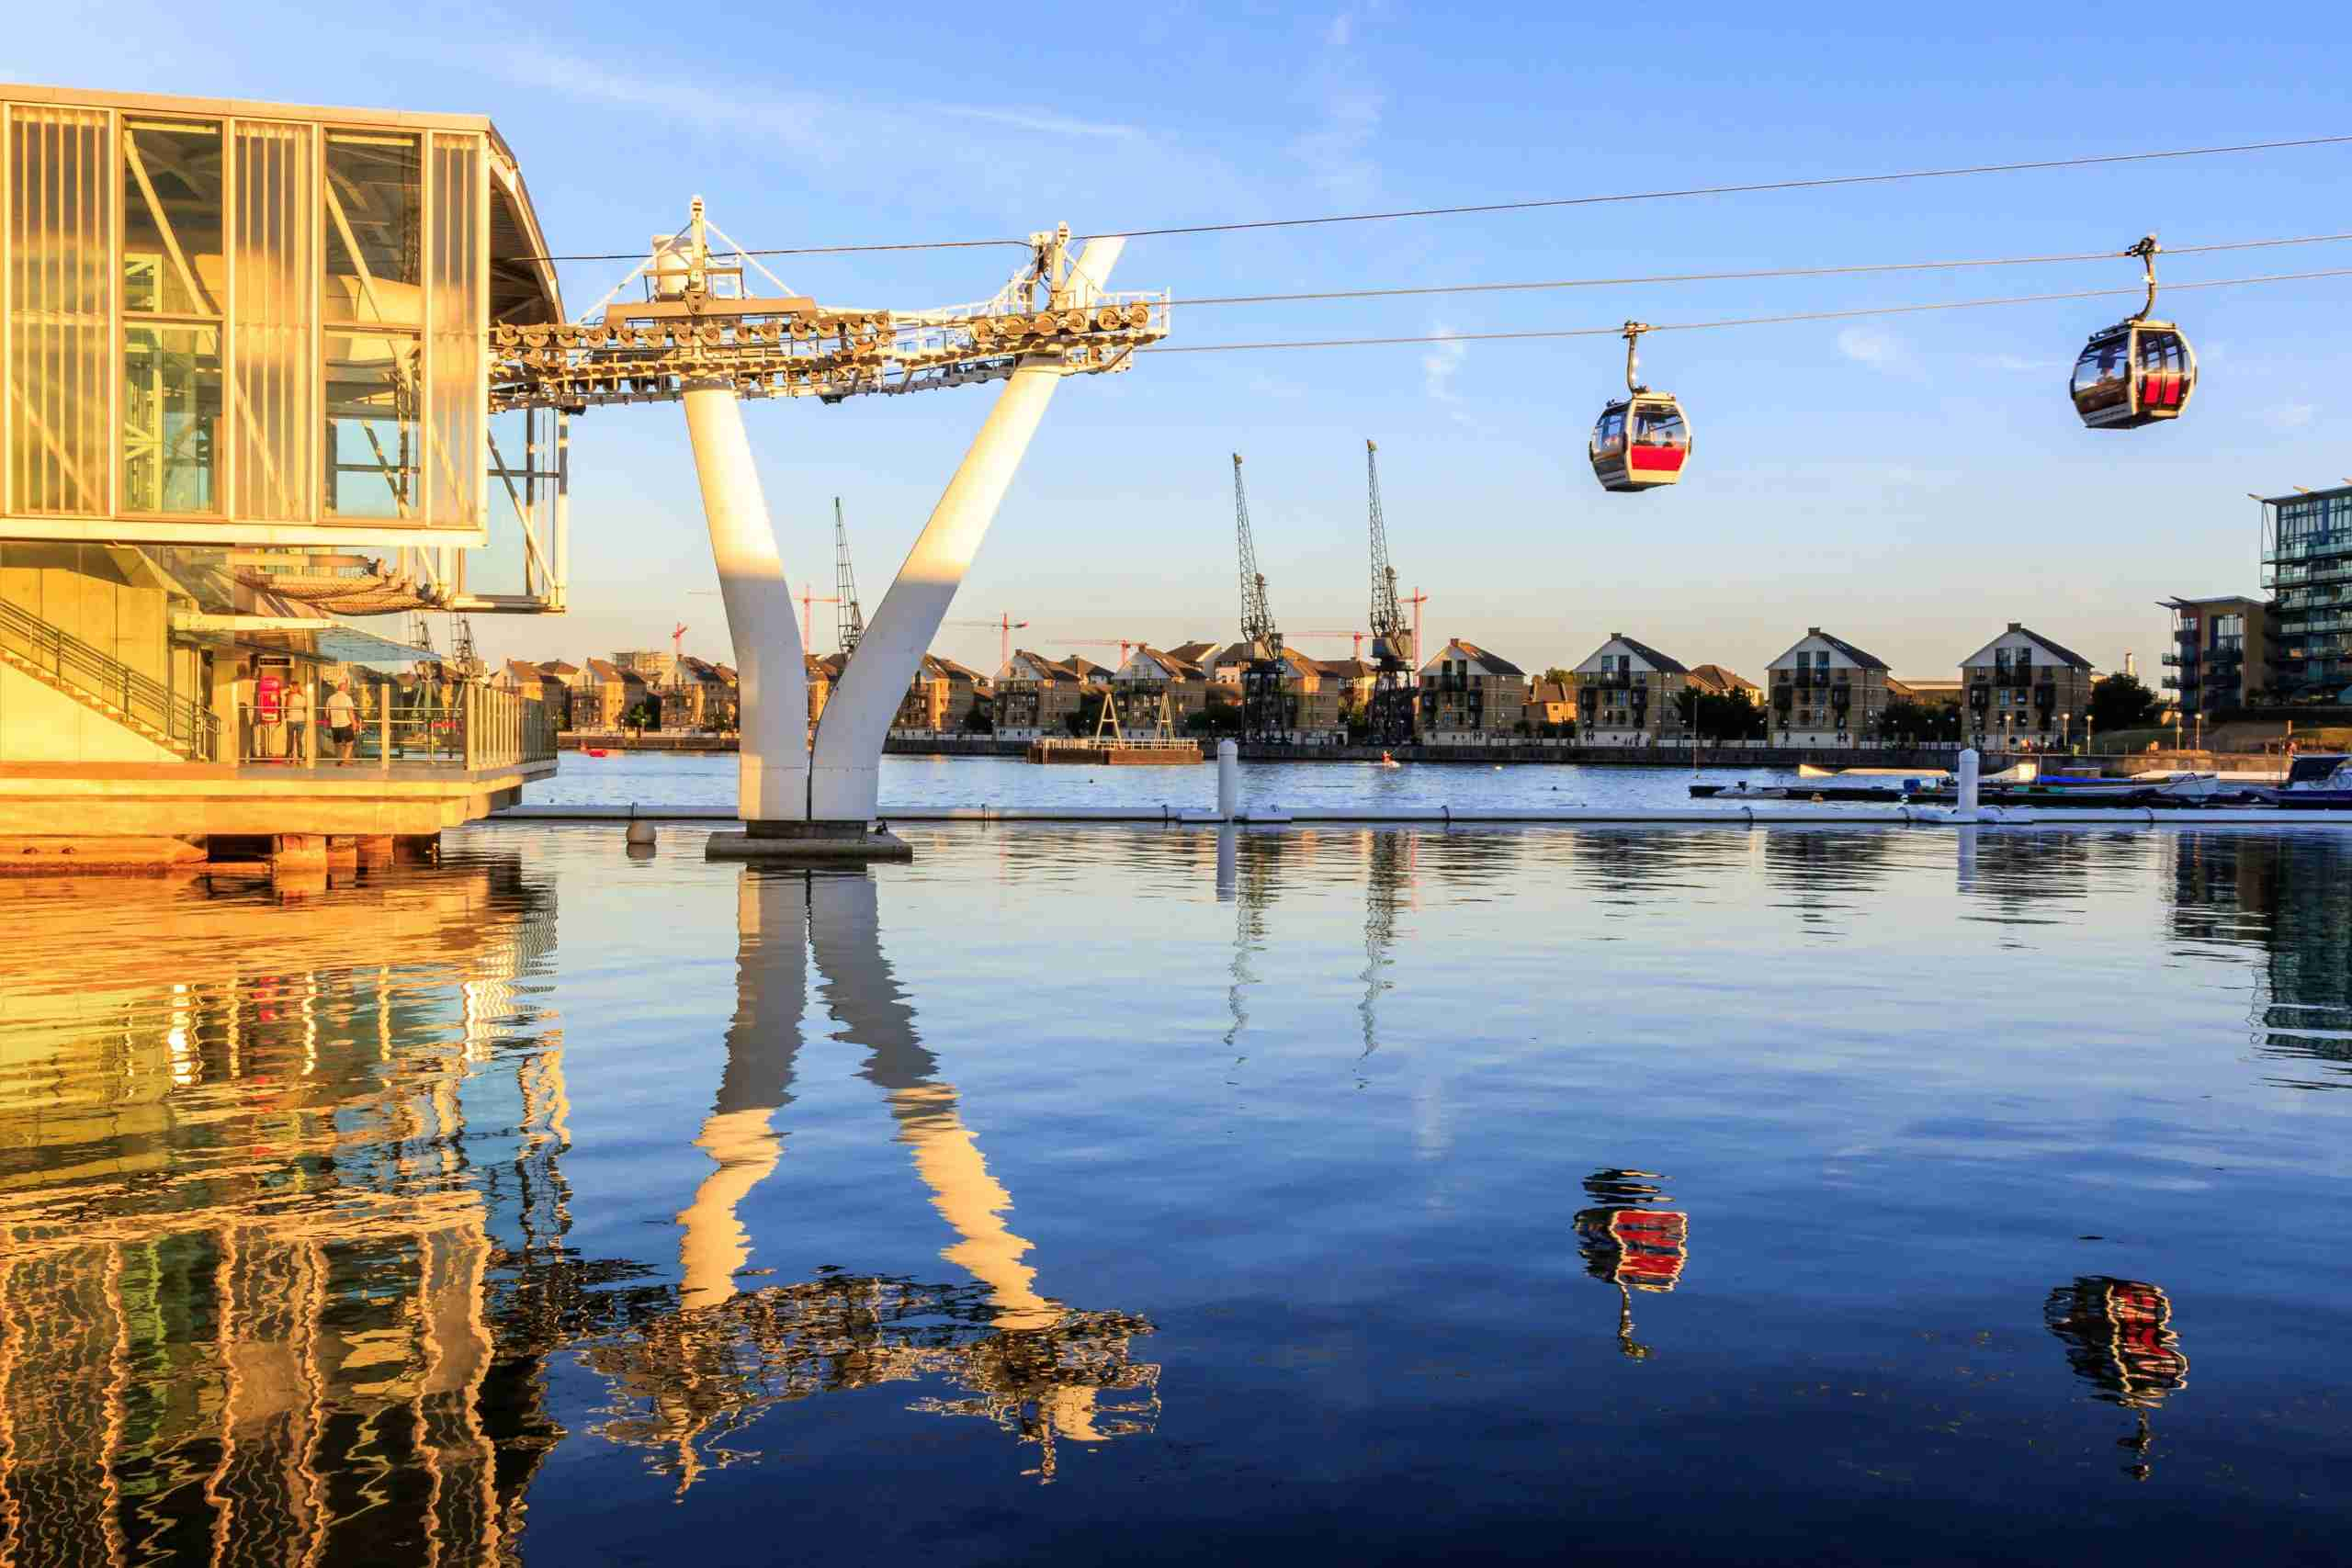 The Thames cable car at Royal Victoria Dock in London at sunset